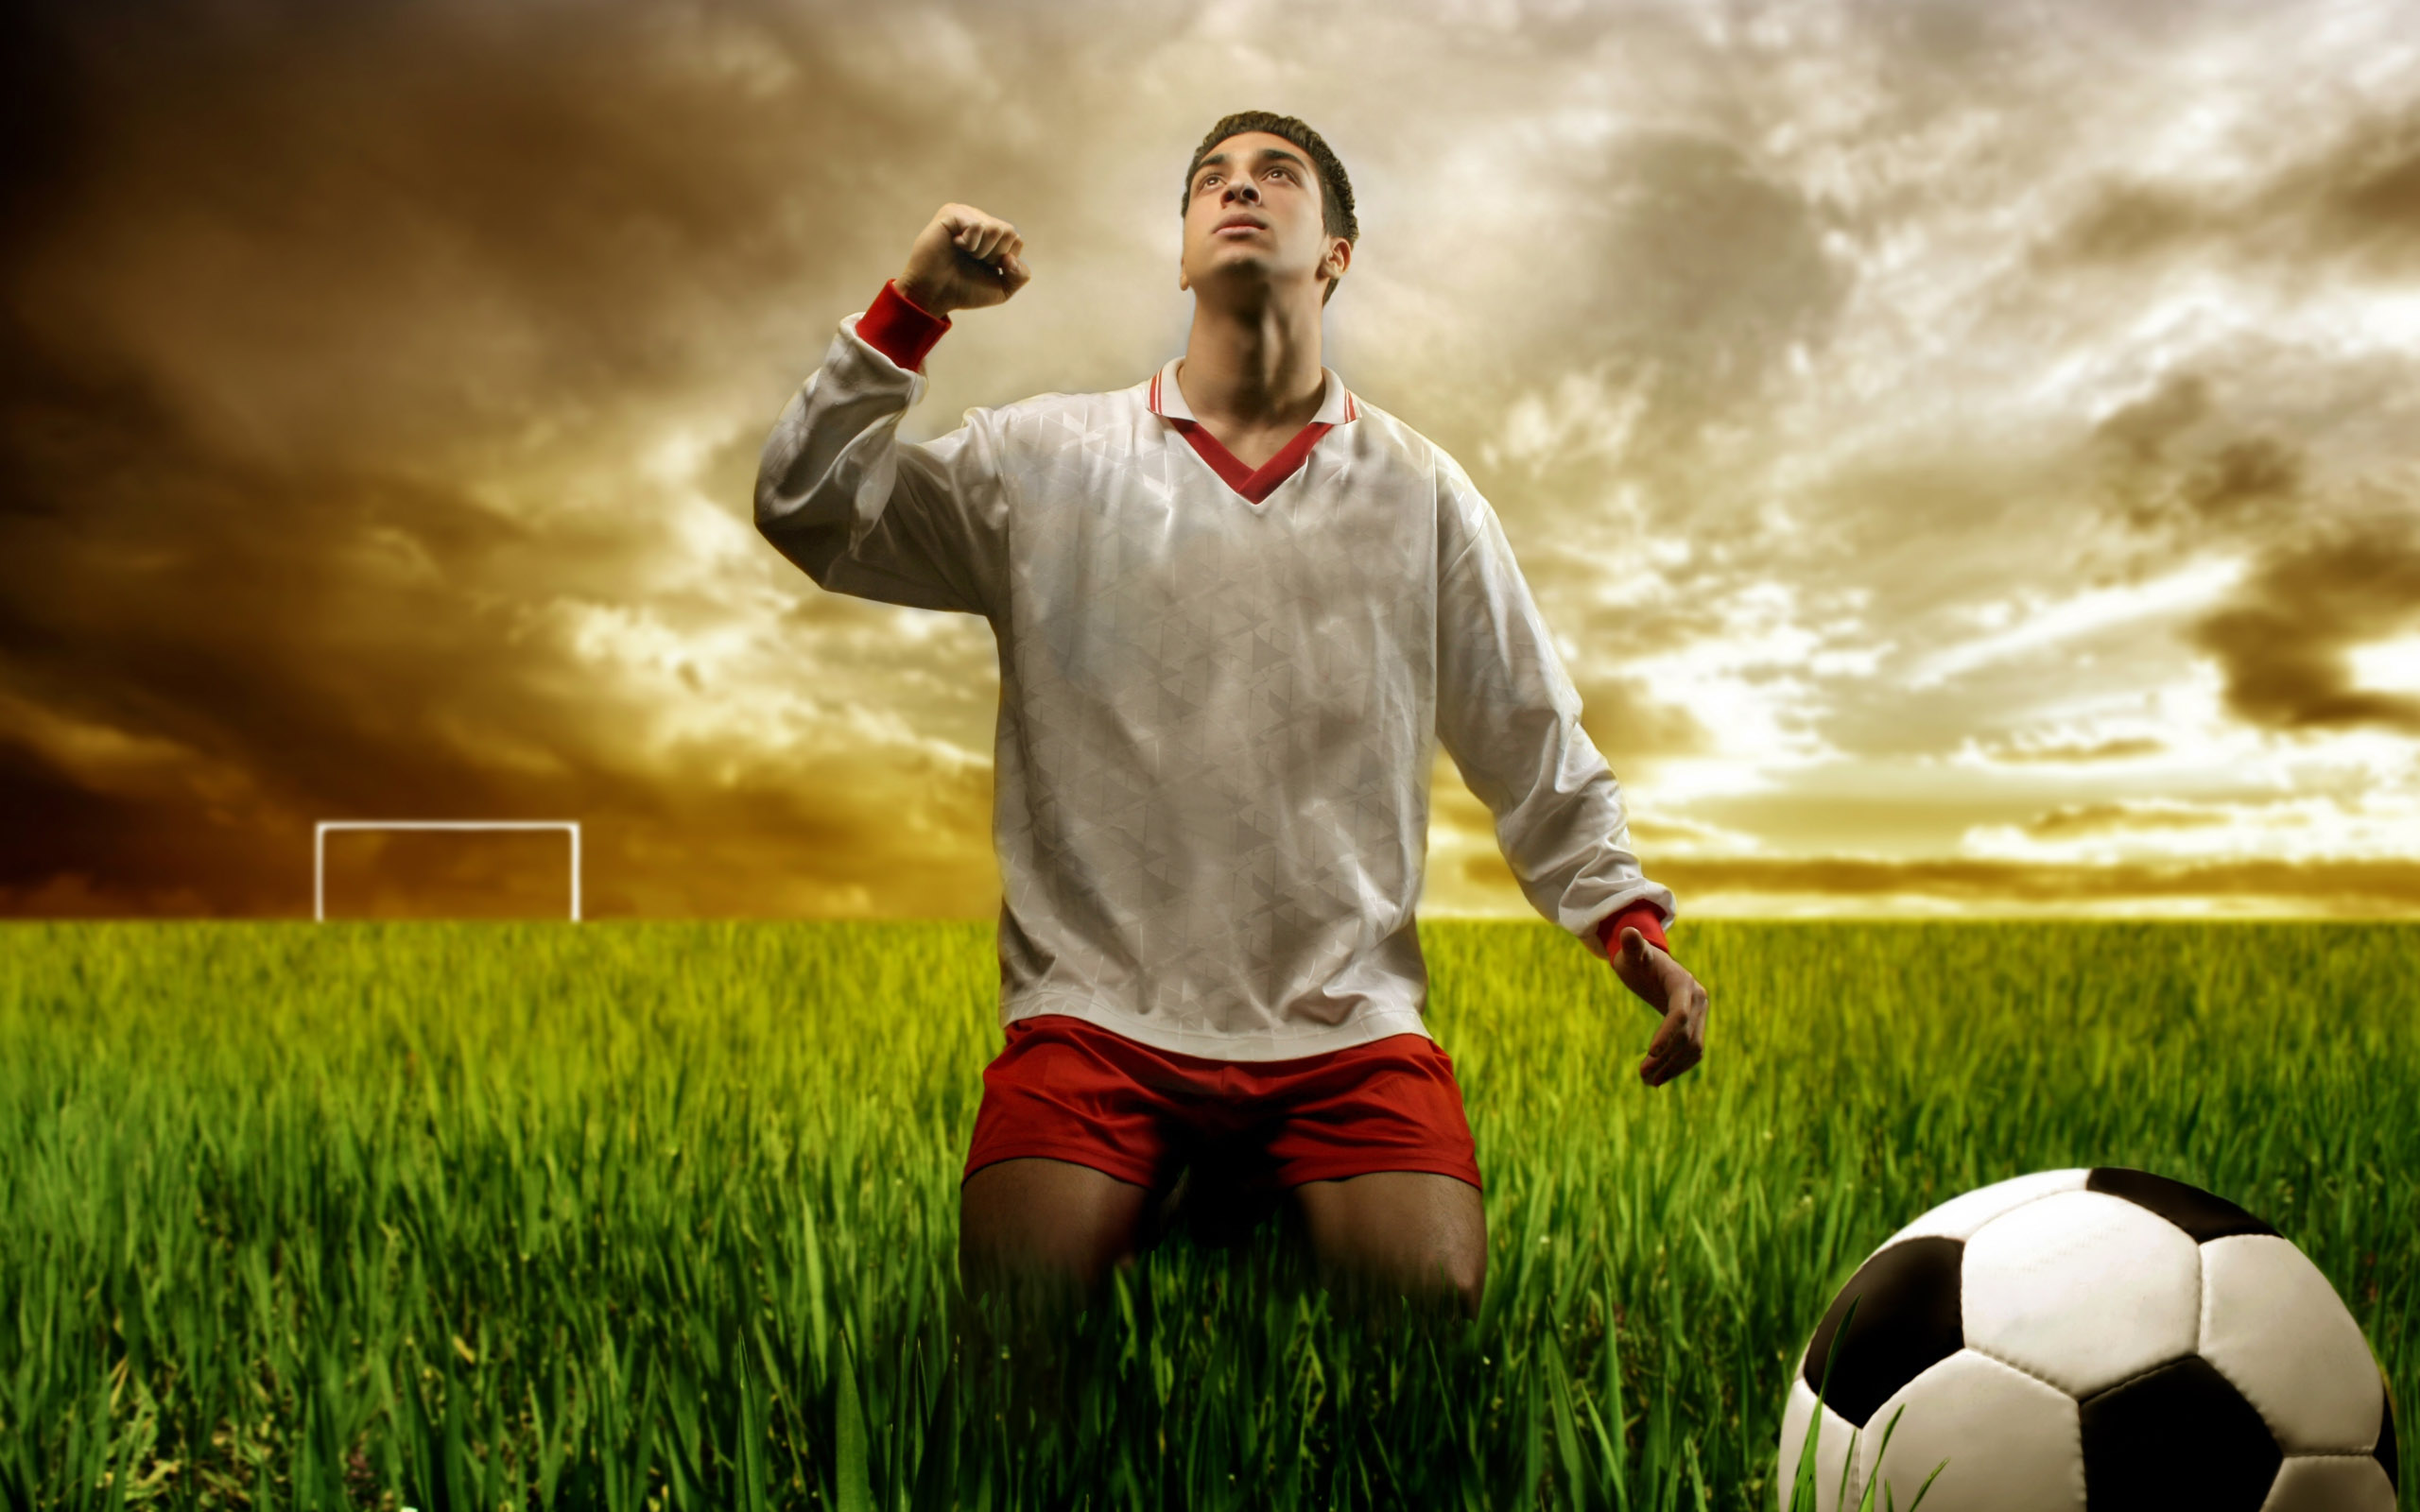 Free Soccer Wallpaper: Soccer Wallpapers High Quality